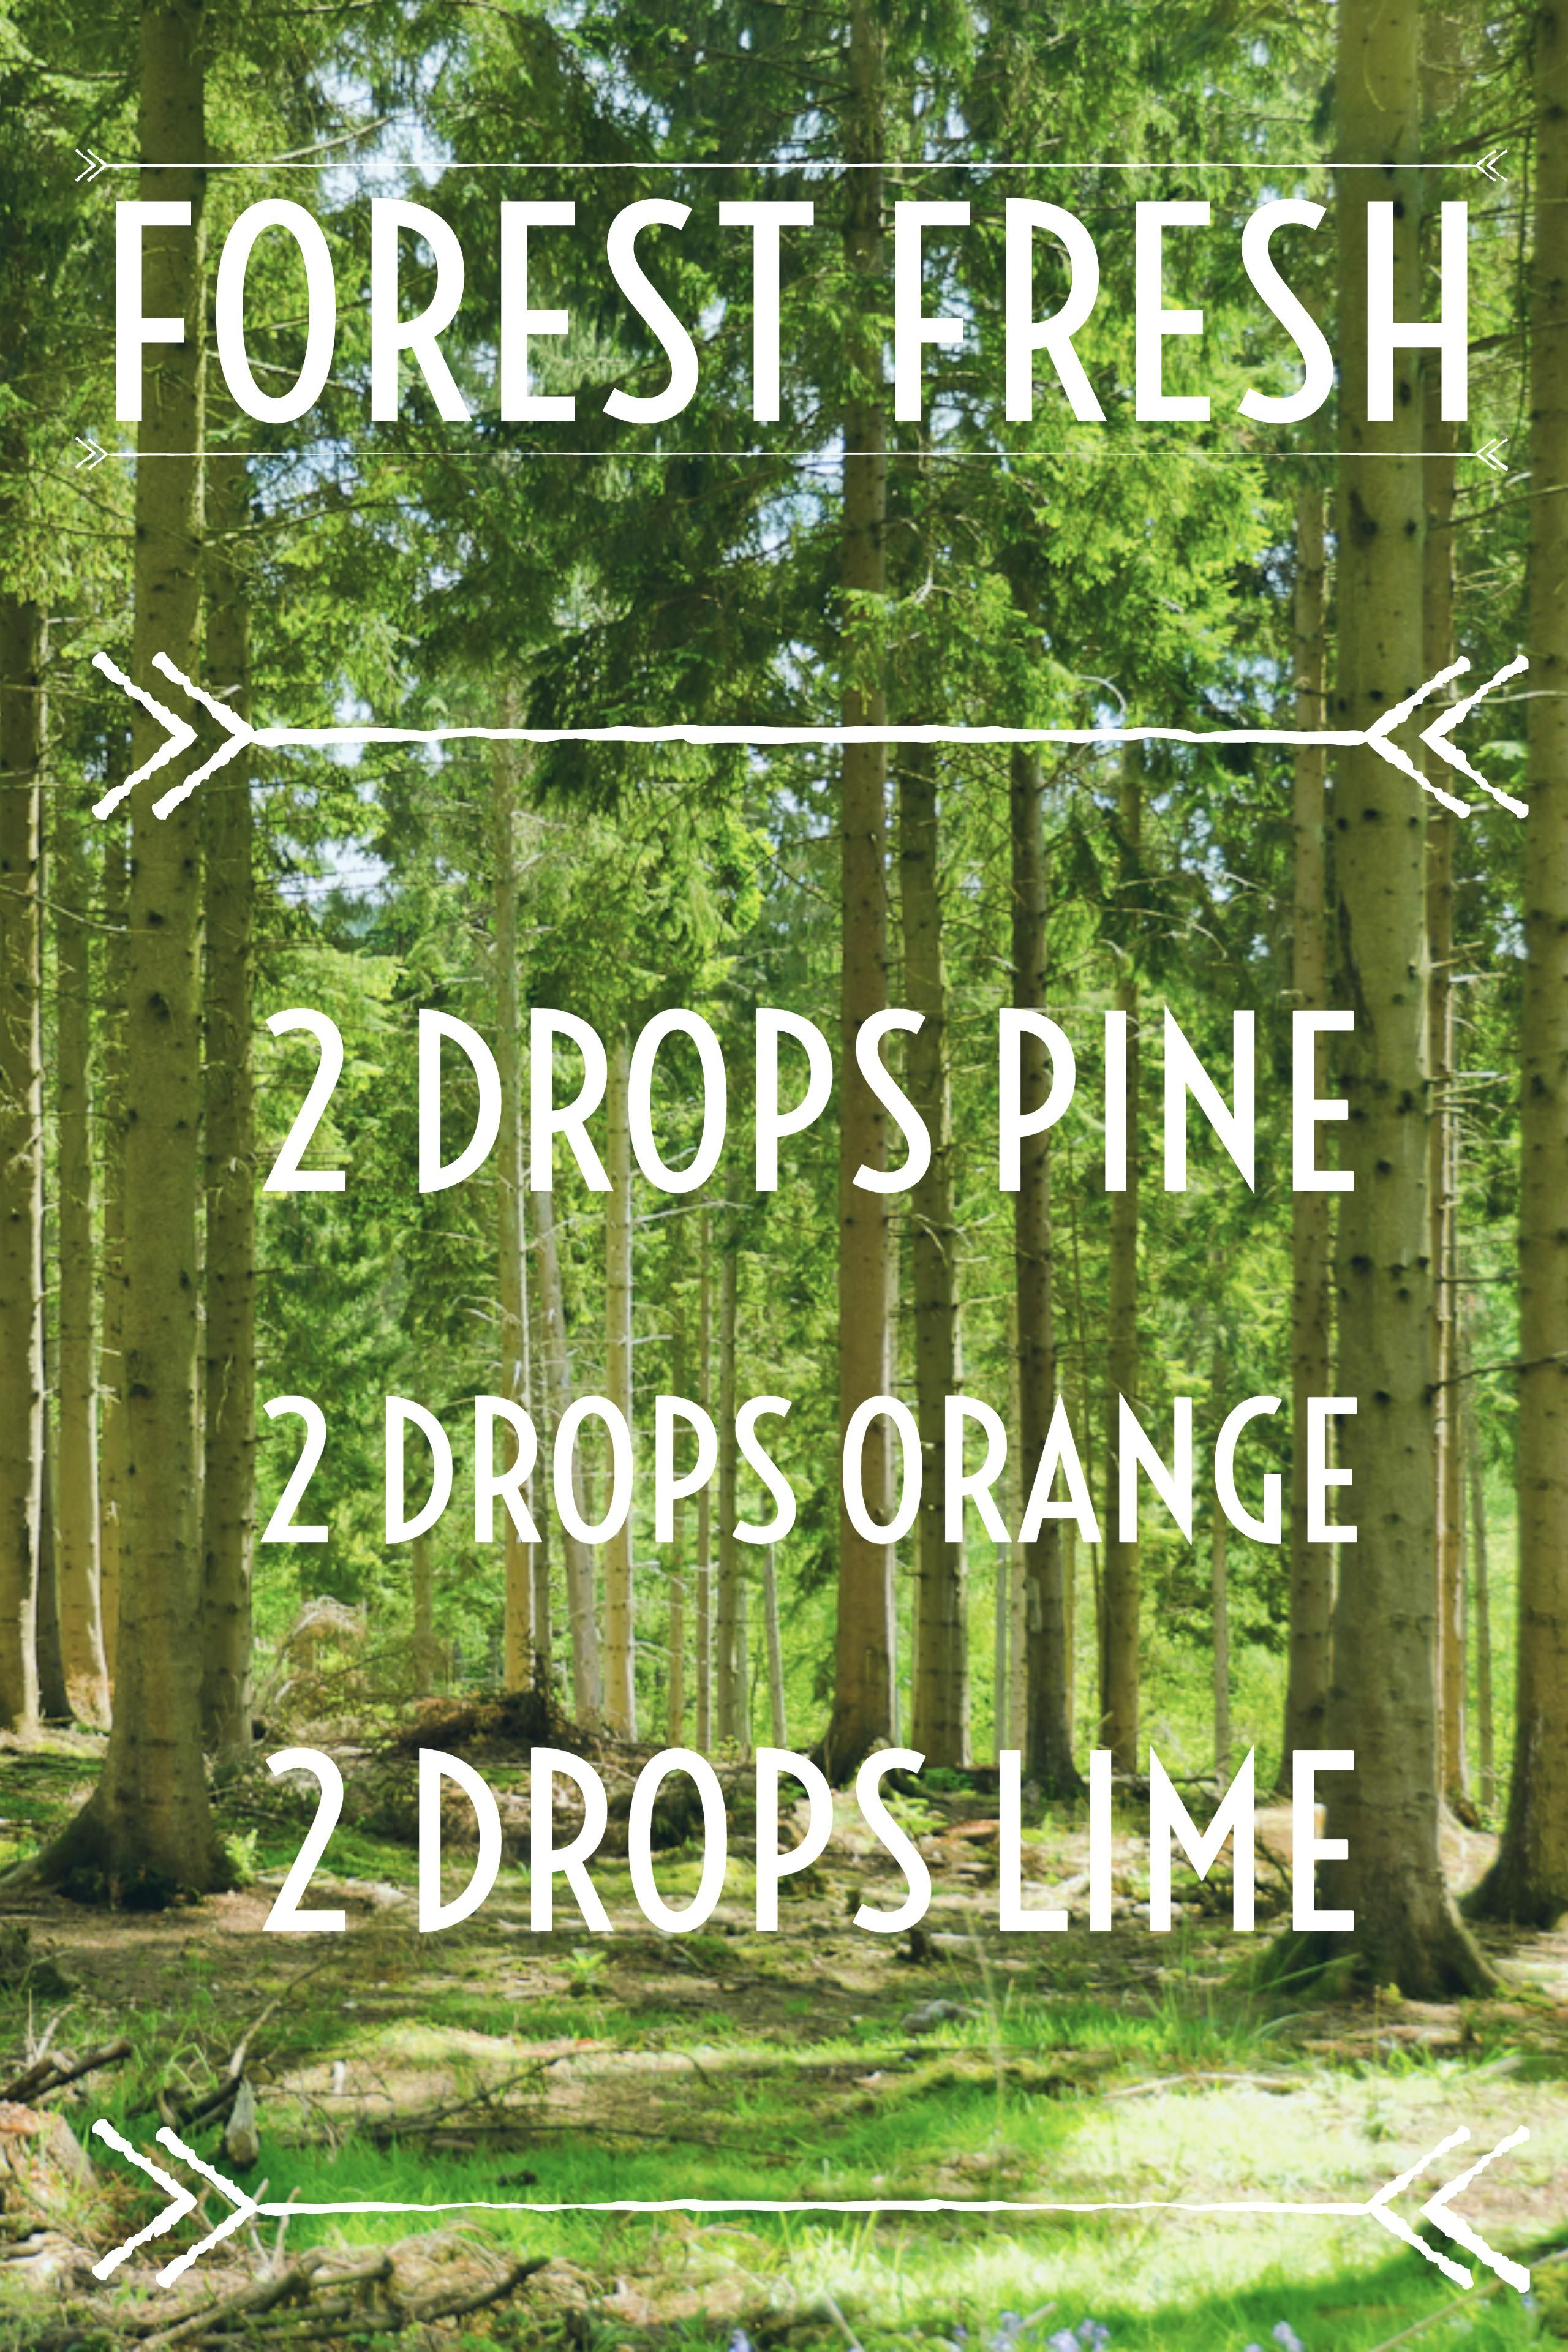 Pine Needle Essential Oil   EO1  AROMATHERAPY, MOOD, OTHER RECIPES